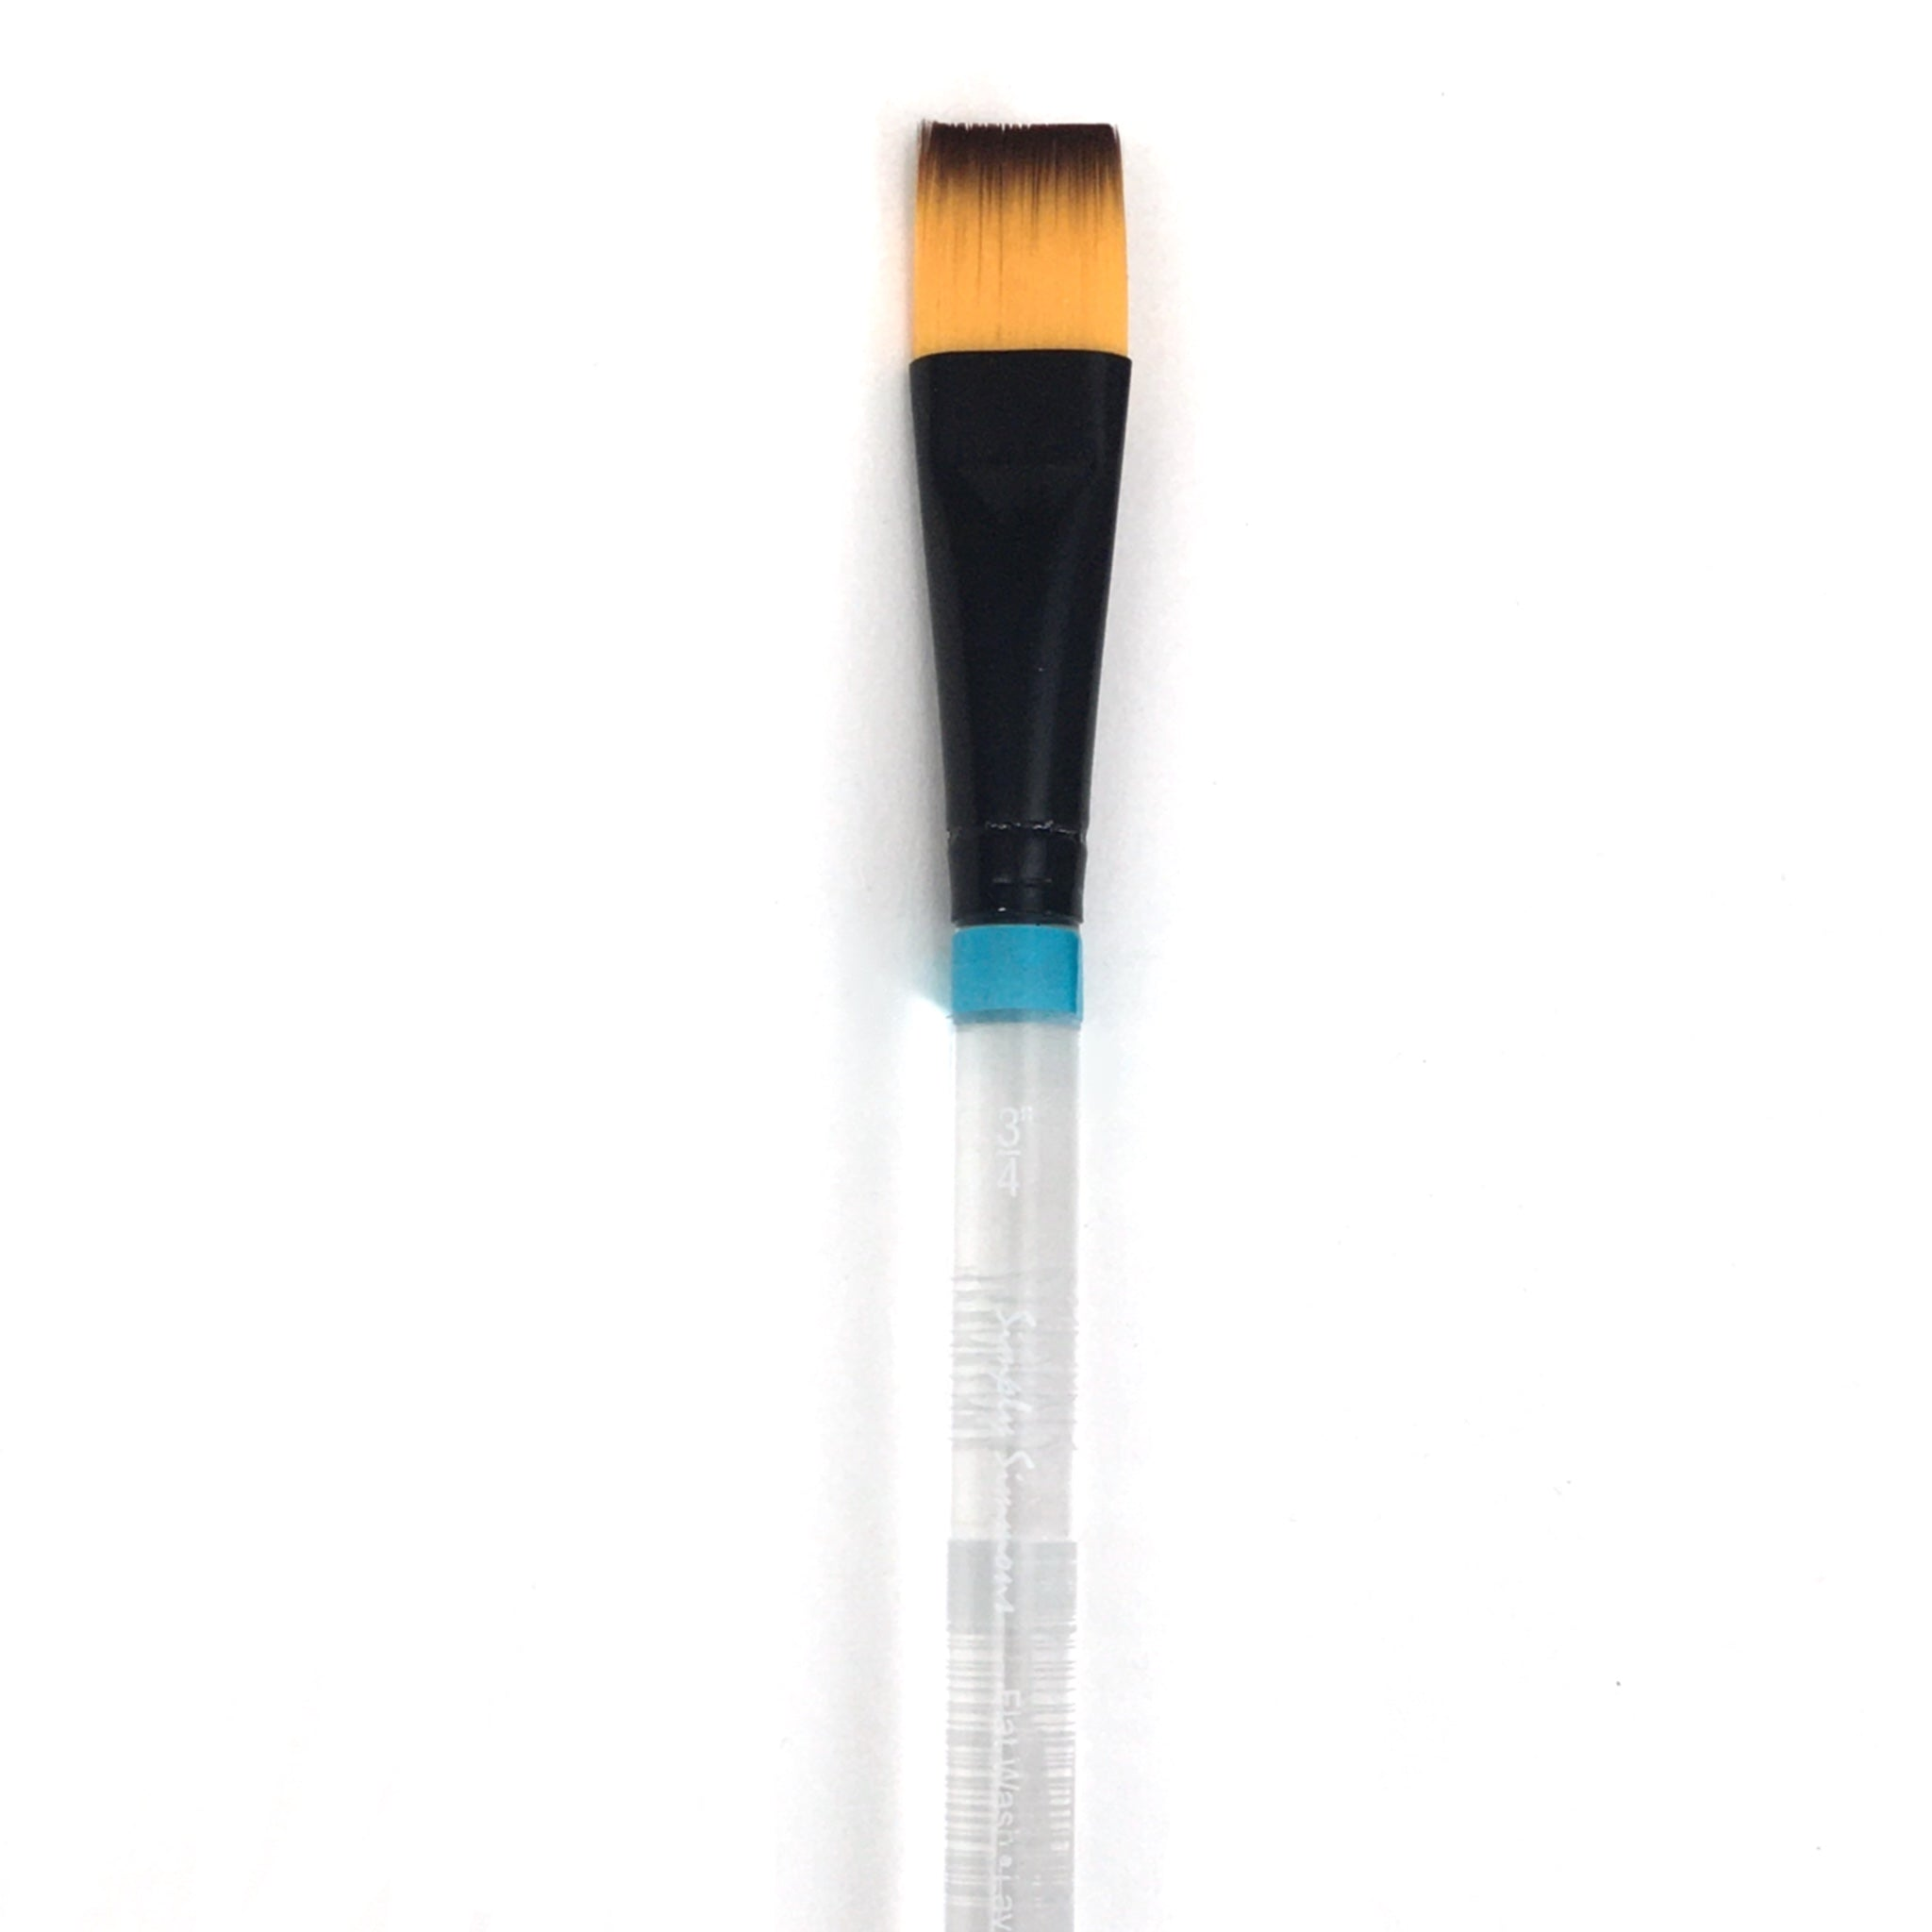 Robert Simmons Simply Simmons Watercolor Brush (Short Handle) - Flat Wash / - 3/4 inches / - synthetic by Robert Simmons - K. A. Artist Shop